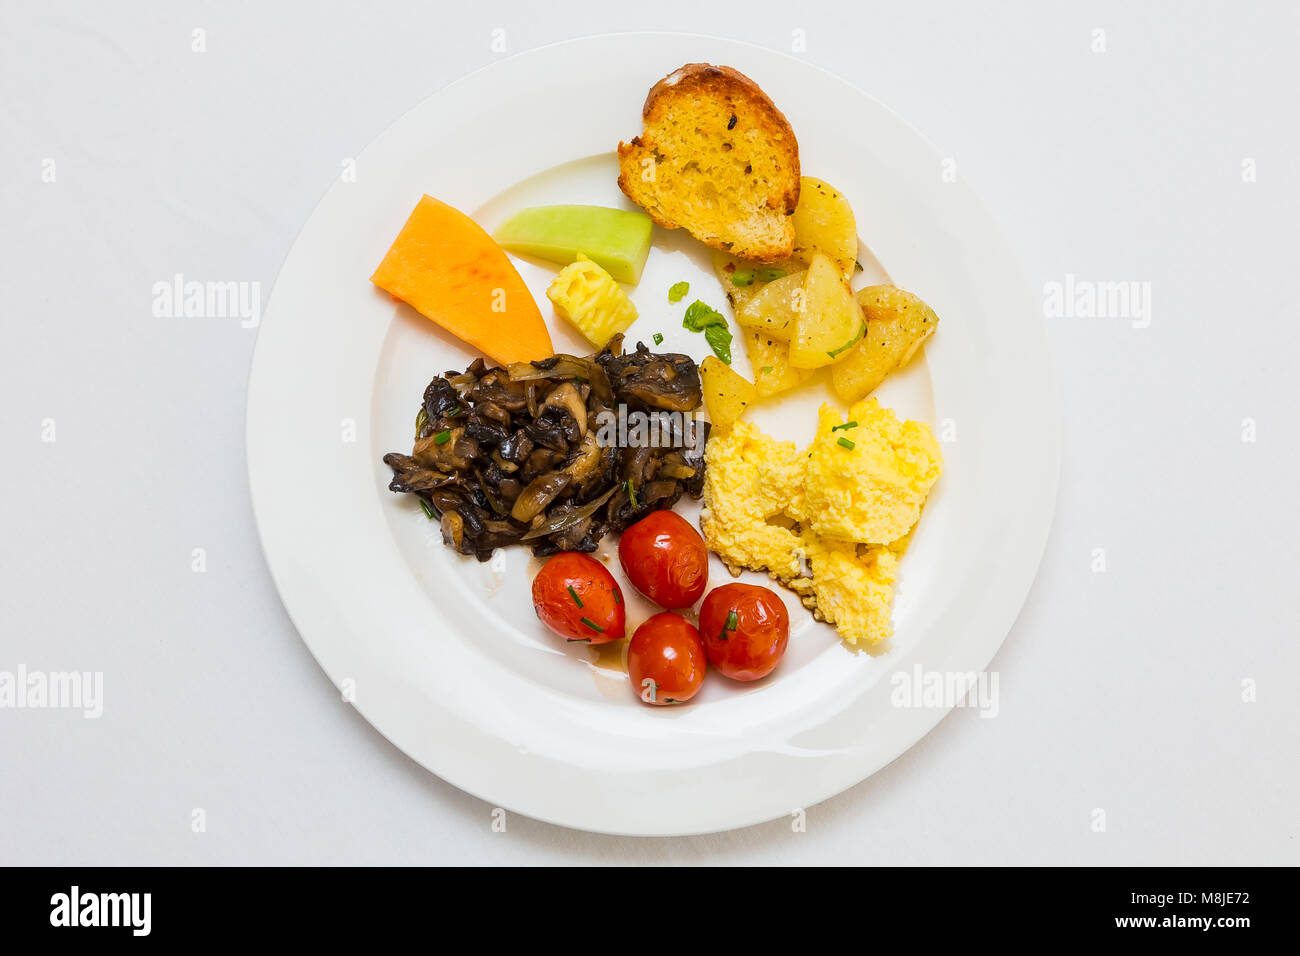 Flat Lay Top View Breakfast Brunch mixed plate at Spring Festival picnic event - Stock Image